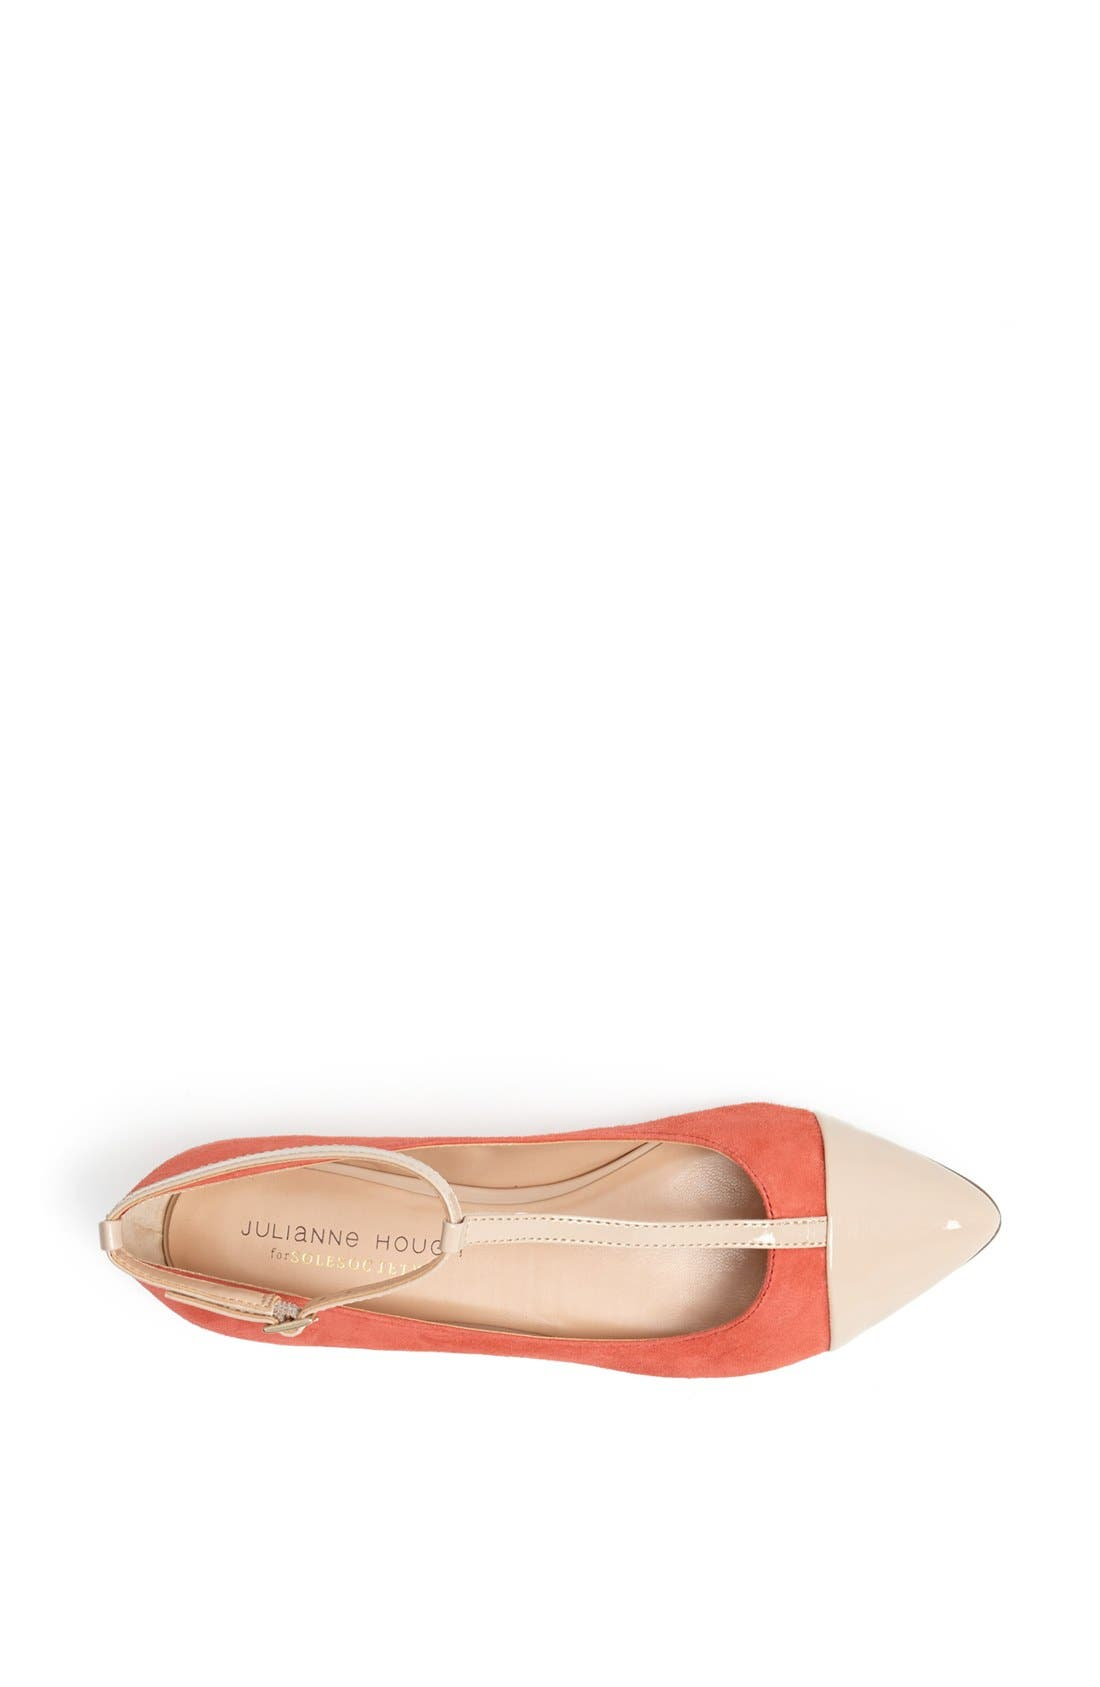 ,                             Julianne Hough for Sole Society 'Addy' Flat,                             Alternate thumbnail 48, color,                             840